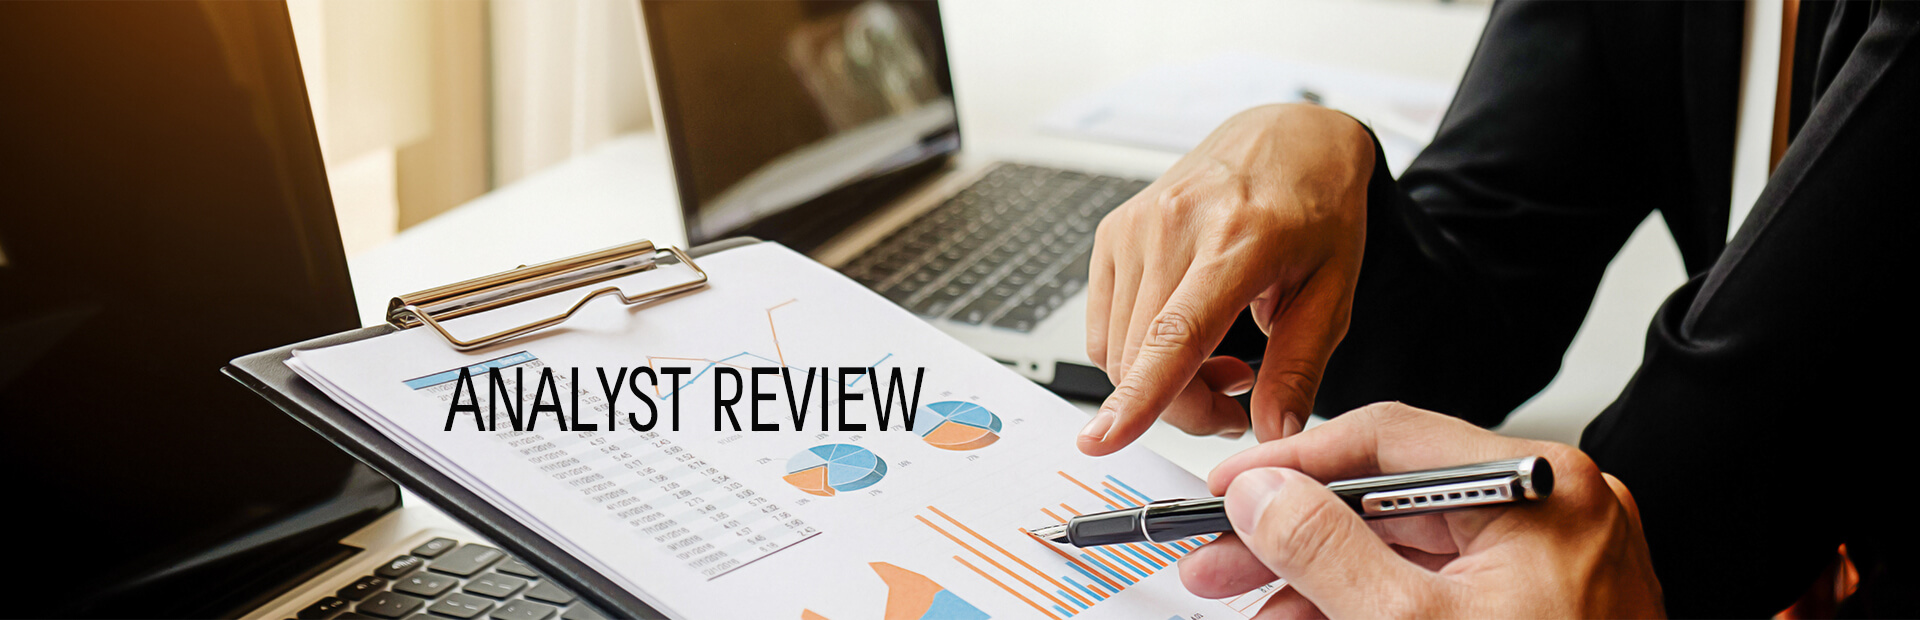 analyst review